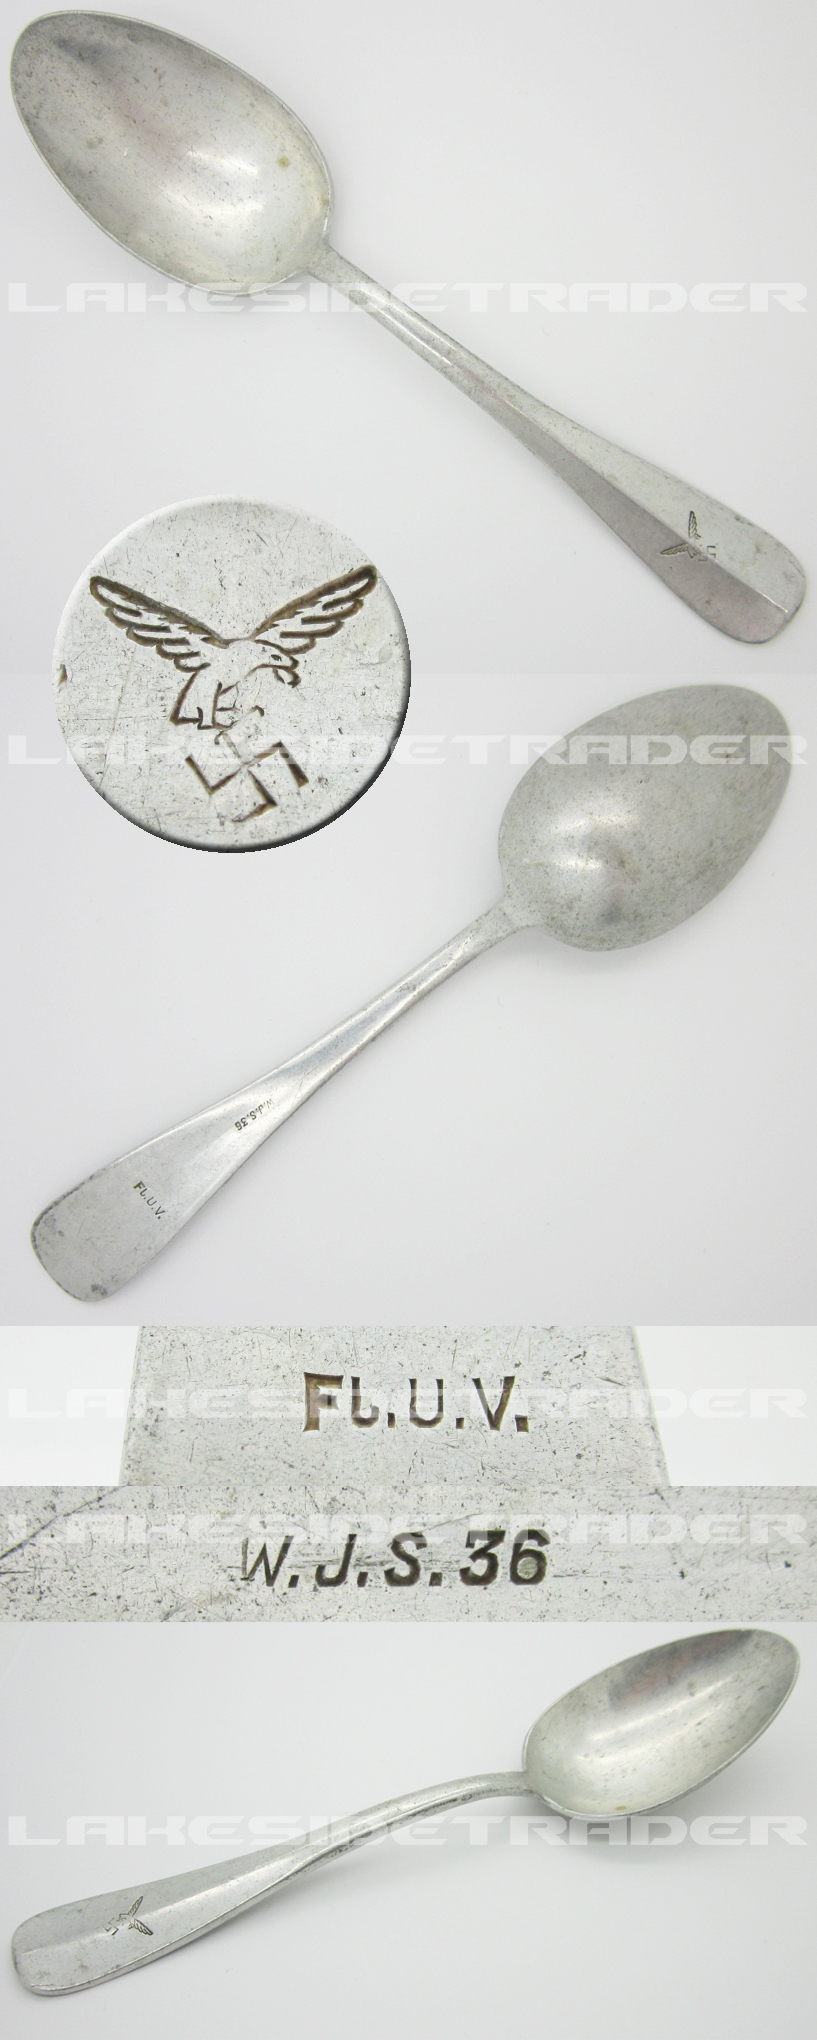 Luftwaffe Mess Hall Spoon by W.J.S. 1936